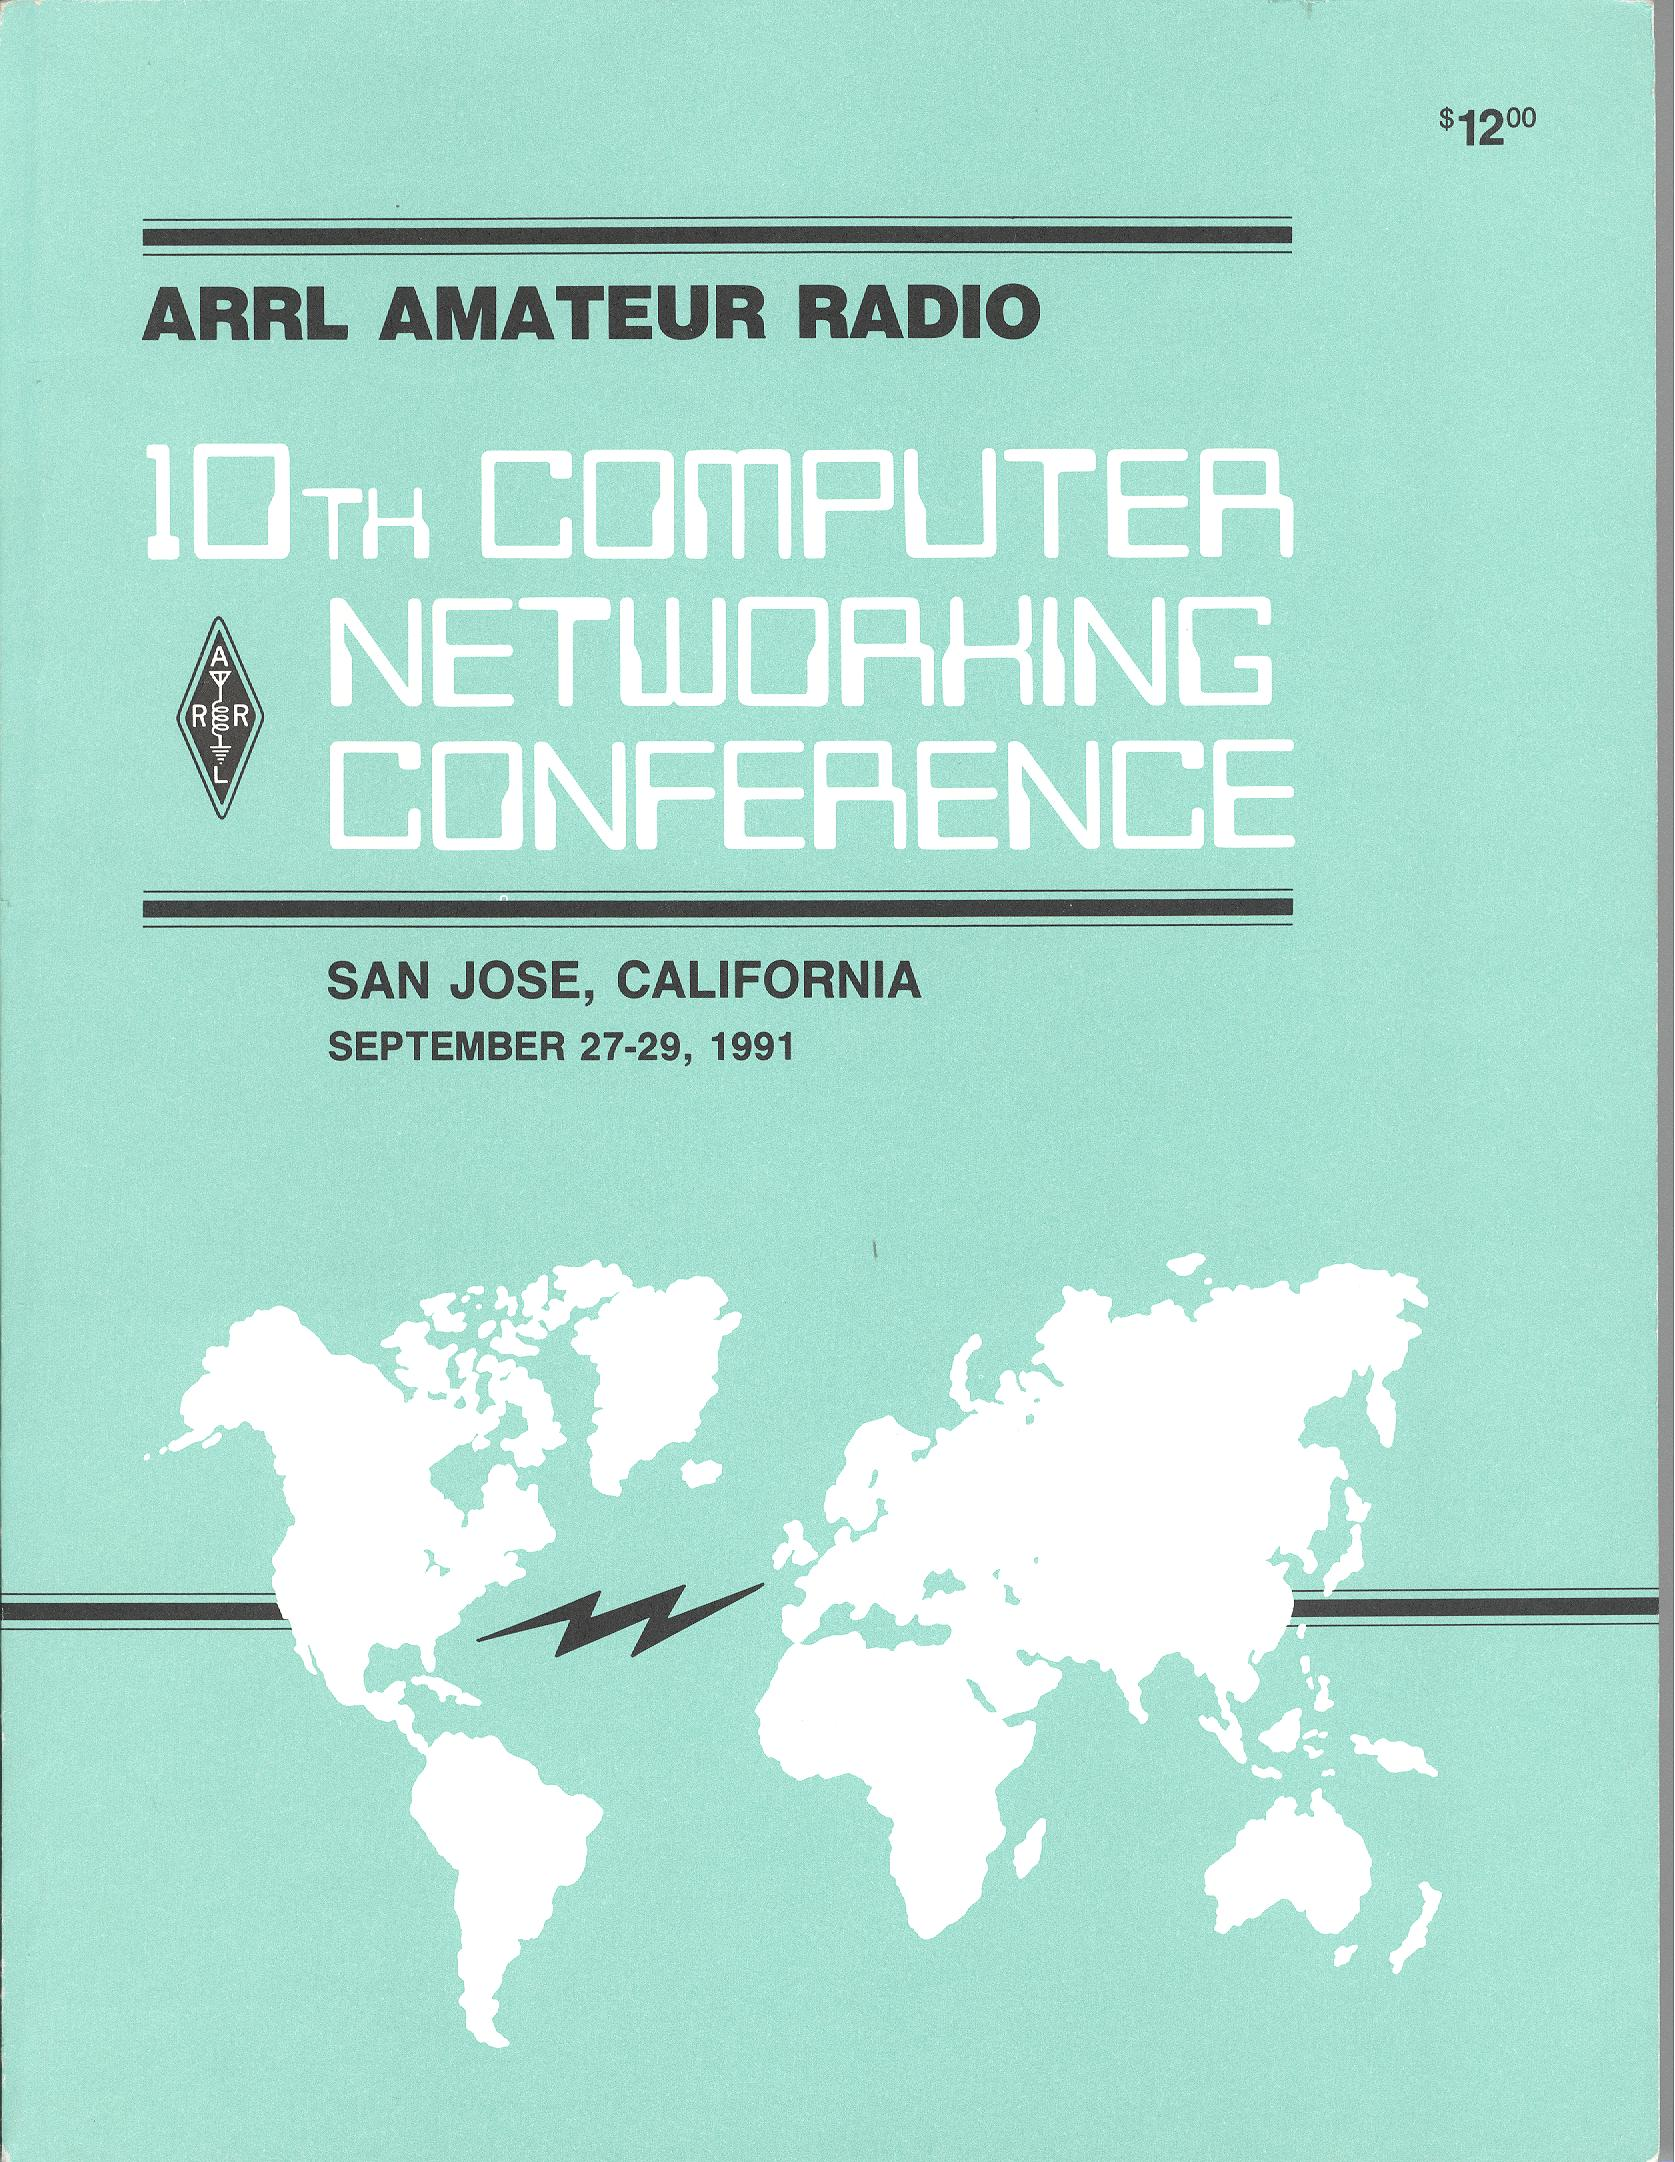 ARRL Amateur Radio 10th Computer Networking Conference